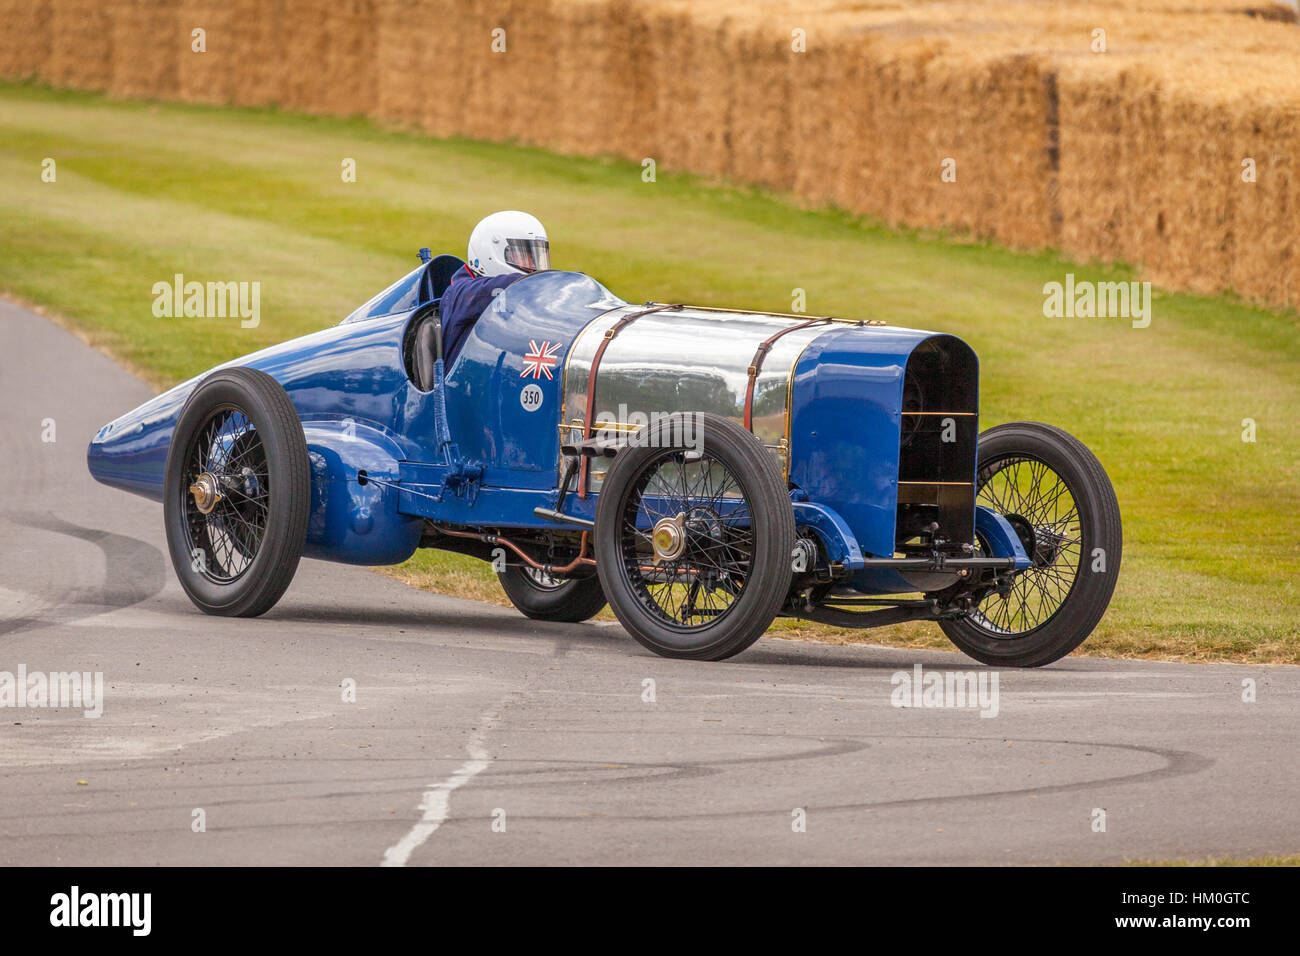 150 Mph Stock Photos Images Alamy Circuit Map For Bromyard Speed Festival Sunbeam Blue Bird Vintage Record Car At Goodwood Of 2014 Image